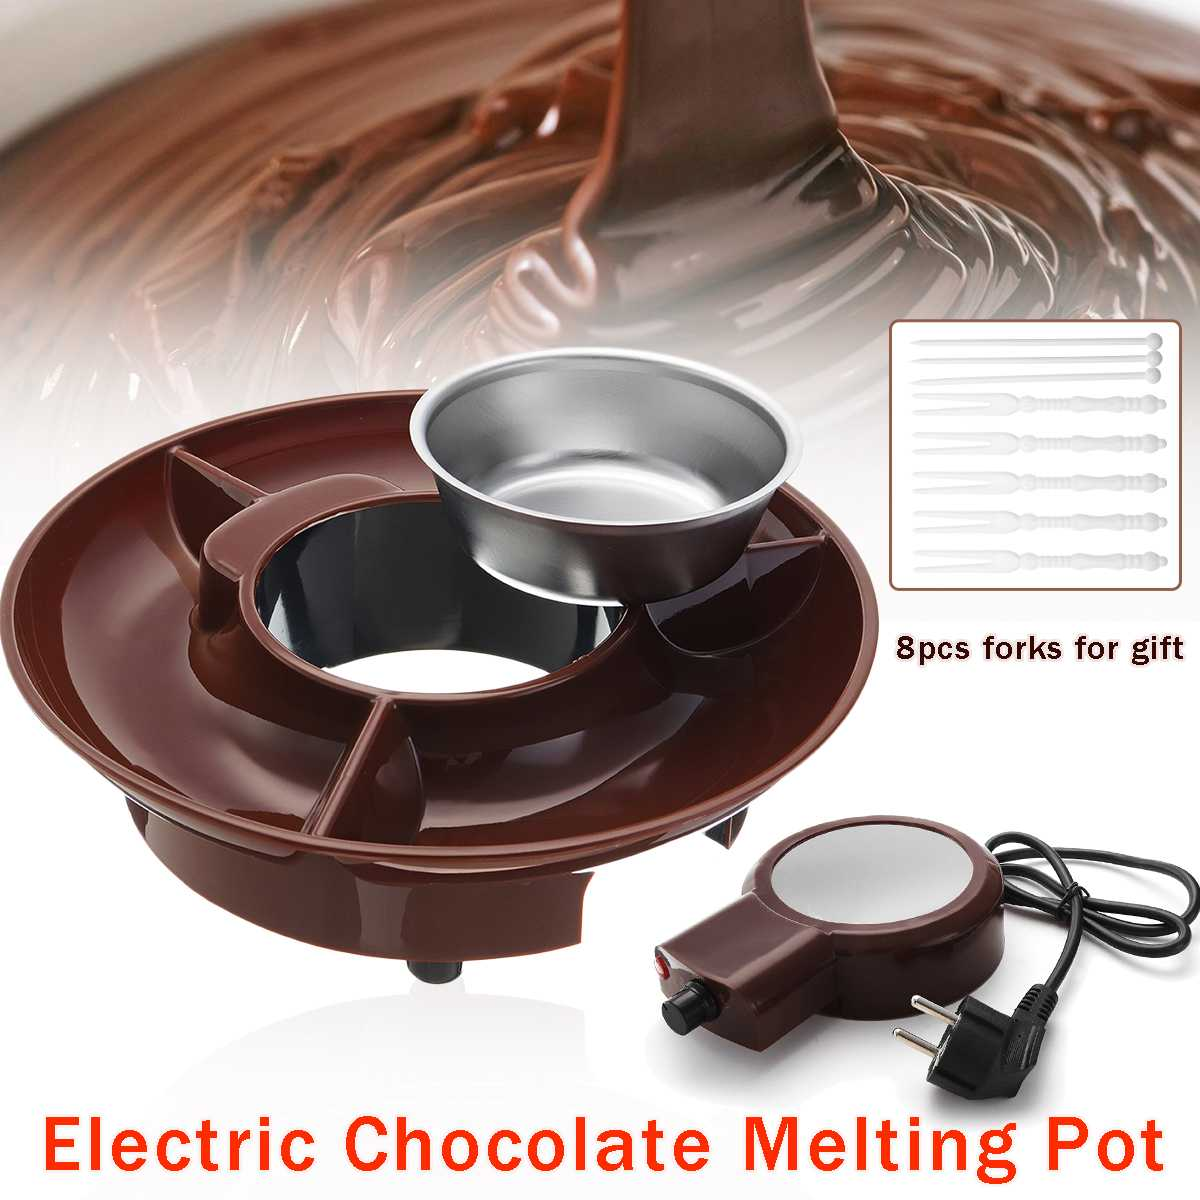 230V 260ml Electric Melting Pot Chocolate Fondue Maker Candy Dessert Cheese Fountain Boiler ABS+Stainless Steel for 6-8 People image